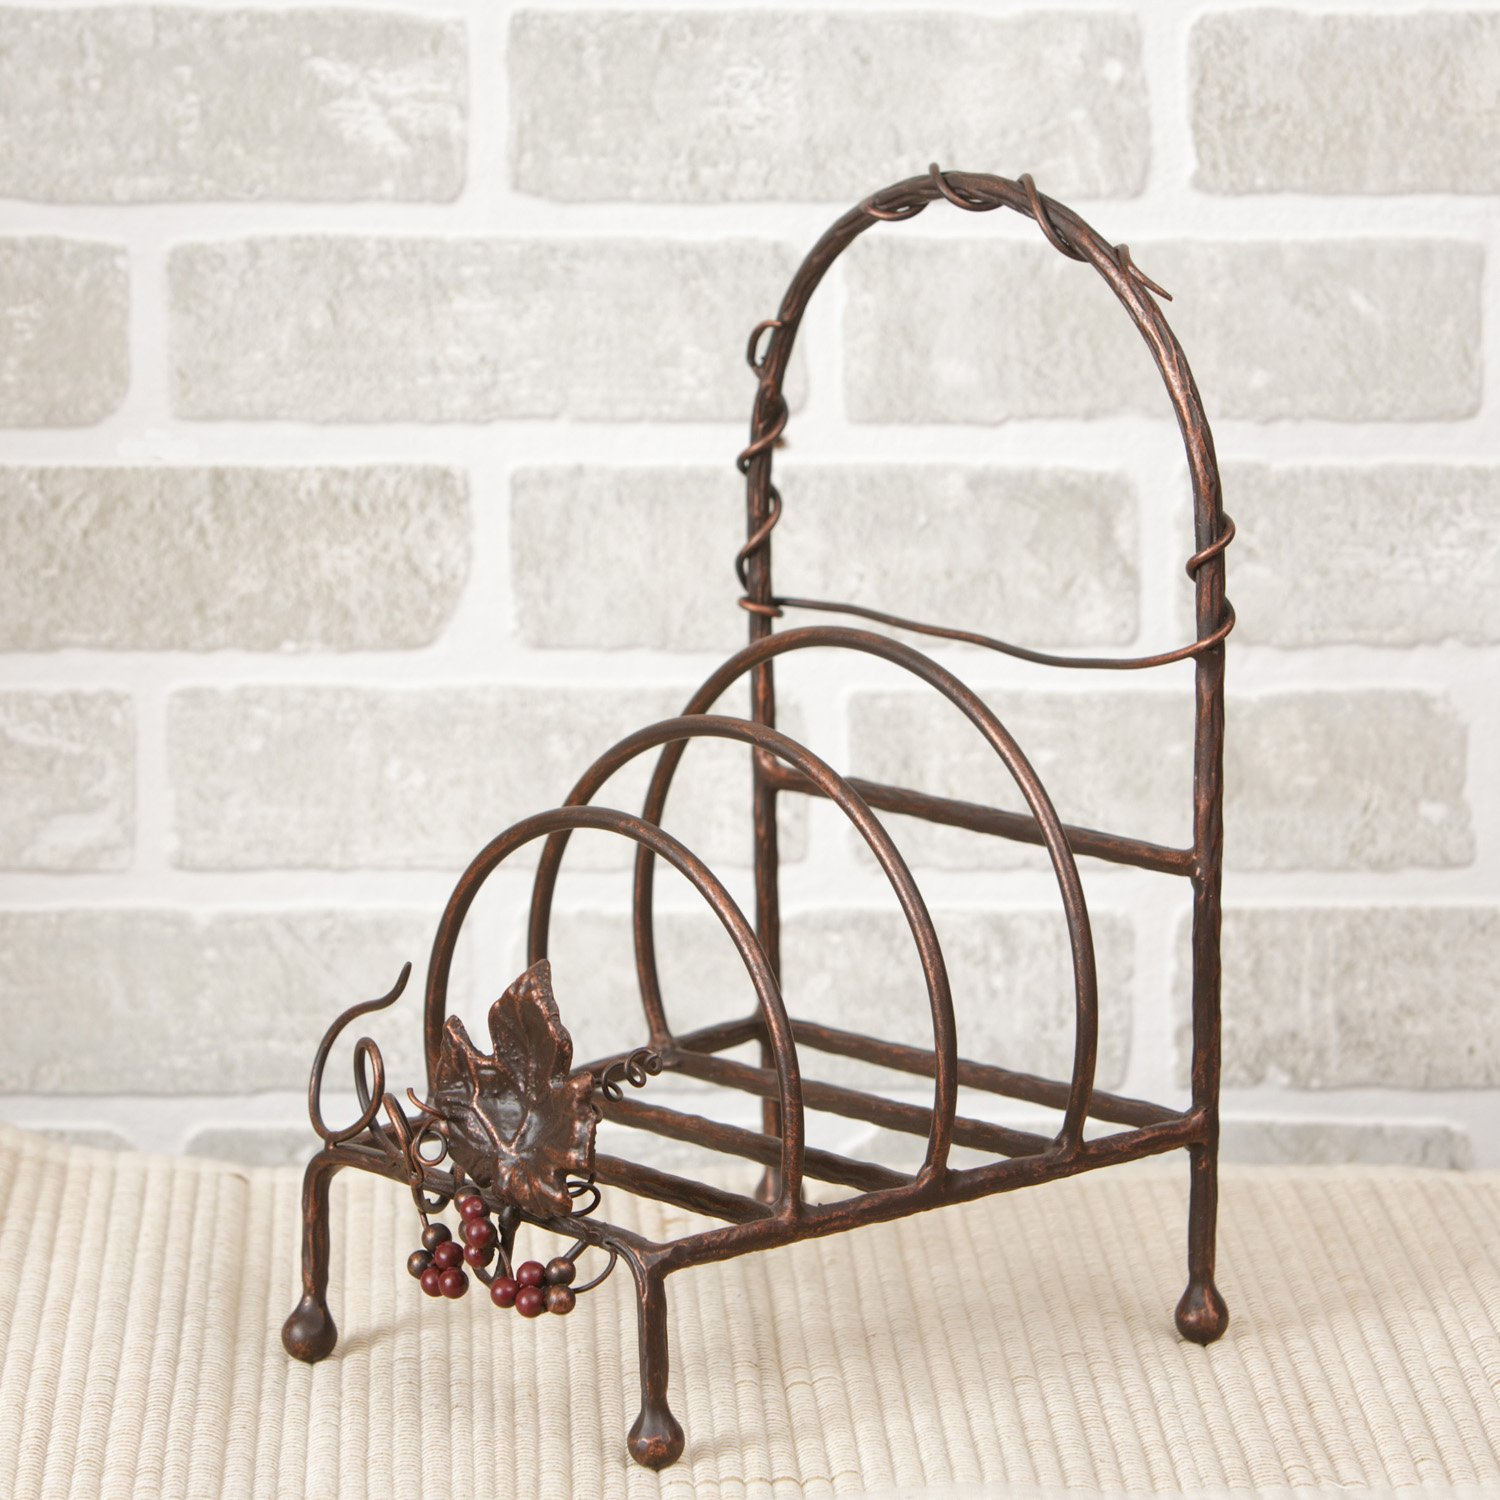 Amazon.com - Your Heart\u0027s Delight Tuscan Decorative Plate Rack 7 by 12-1/2 by 8-Inch - Dish Racks & Amazon.com - Your Heart\u0027s Delight Tuscan Decorative Plate Rack 7 by ...